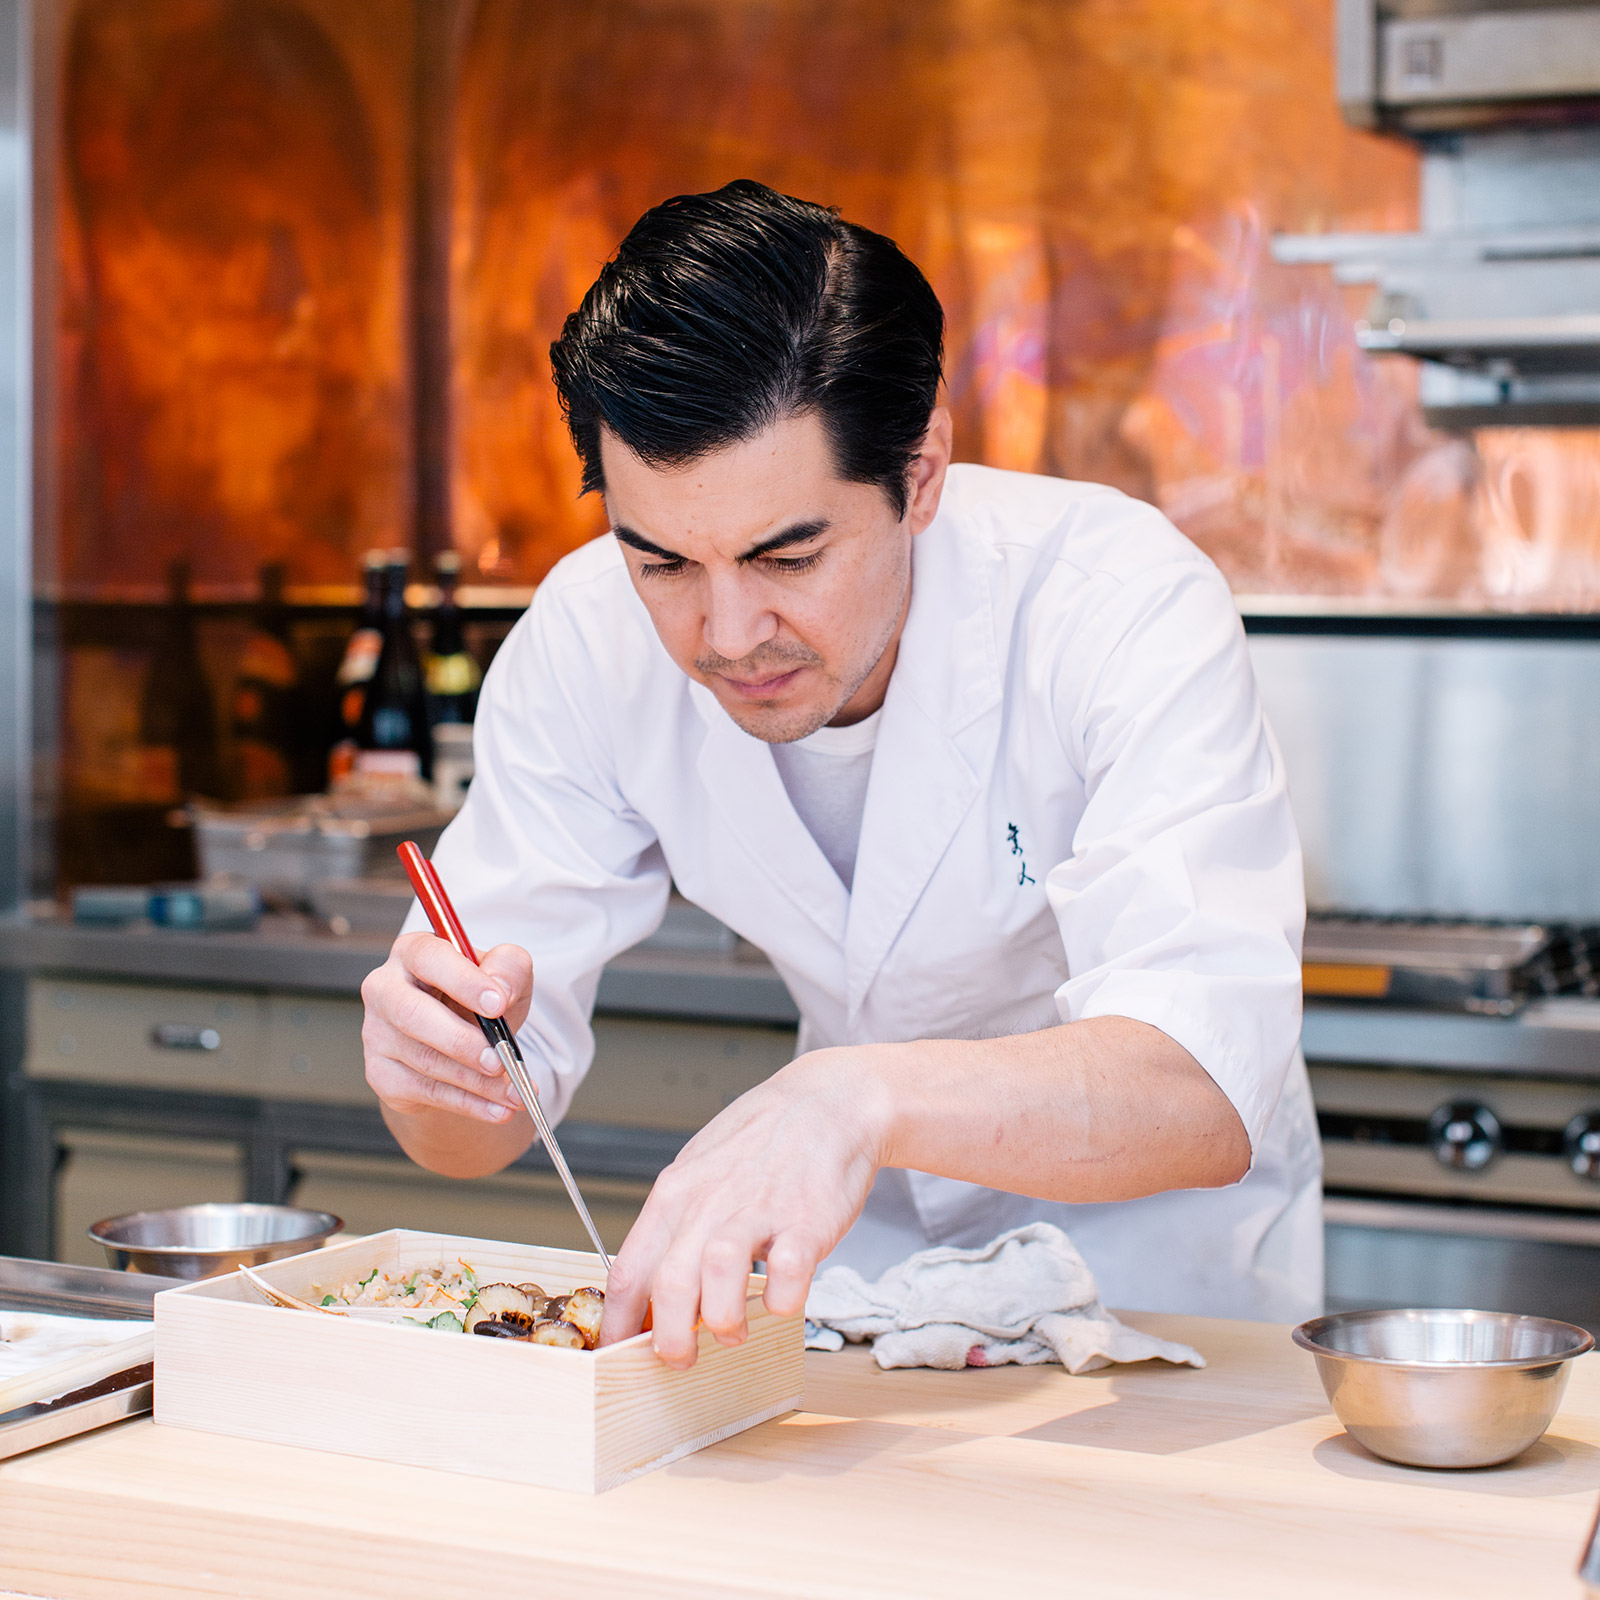 chef plating a box with japanese food in kitchen